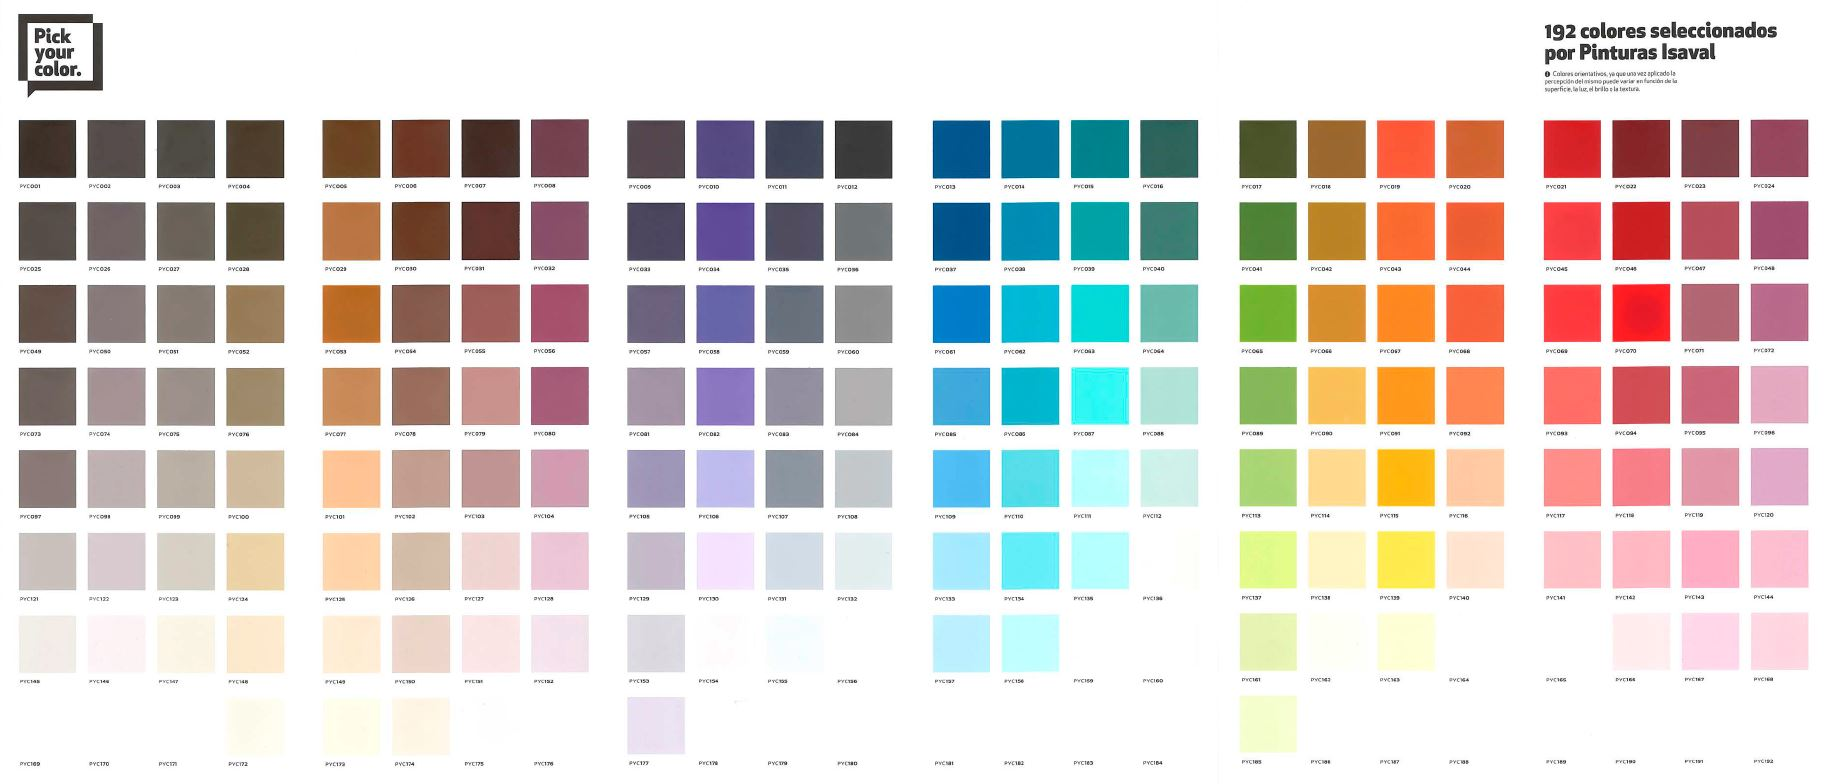 Carta PYC Pick Your Color Pinturas Isaval